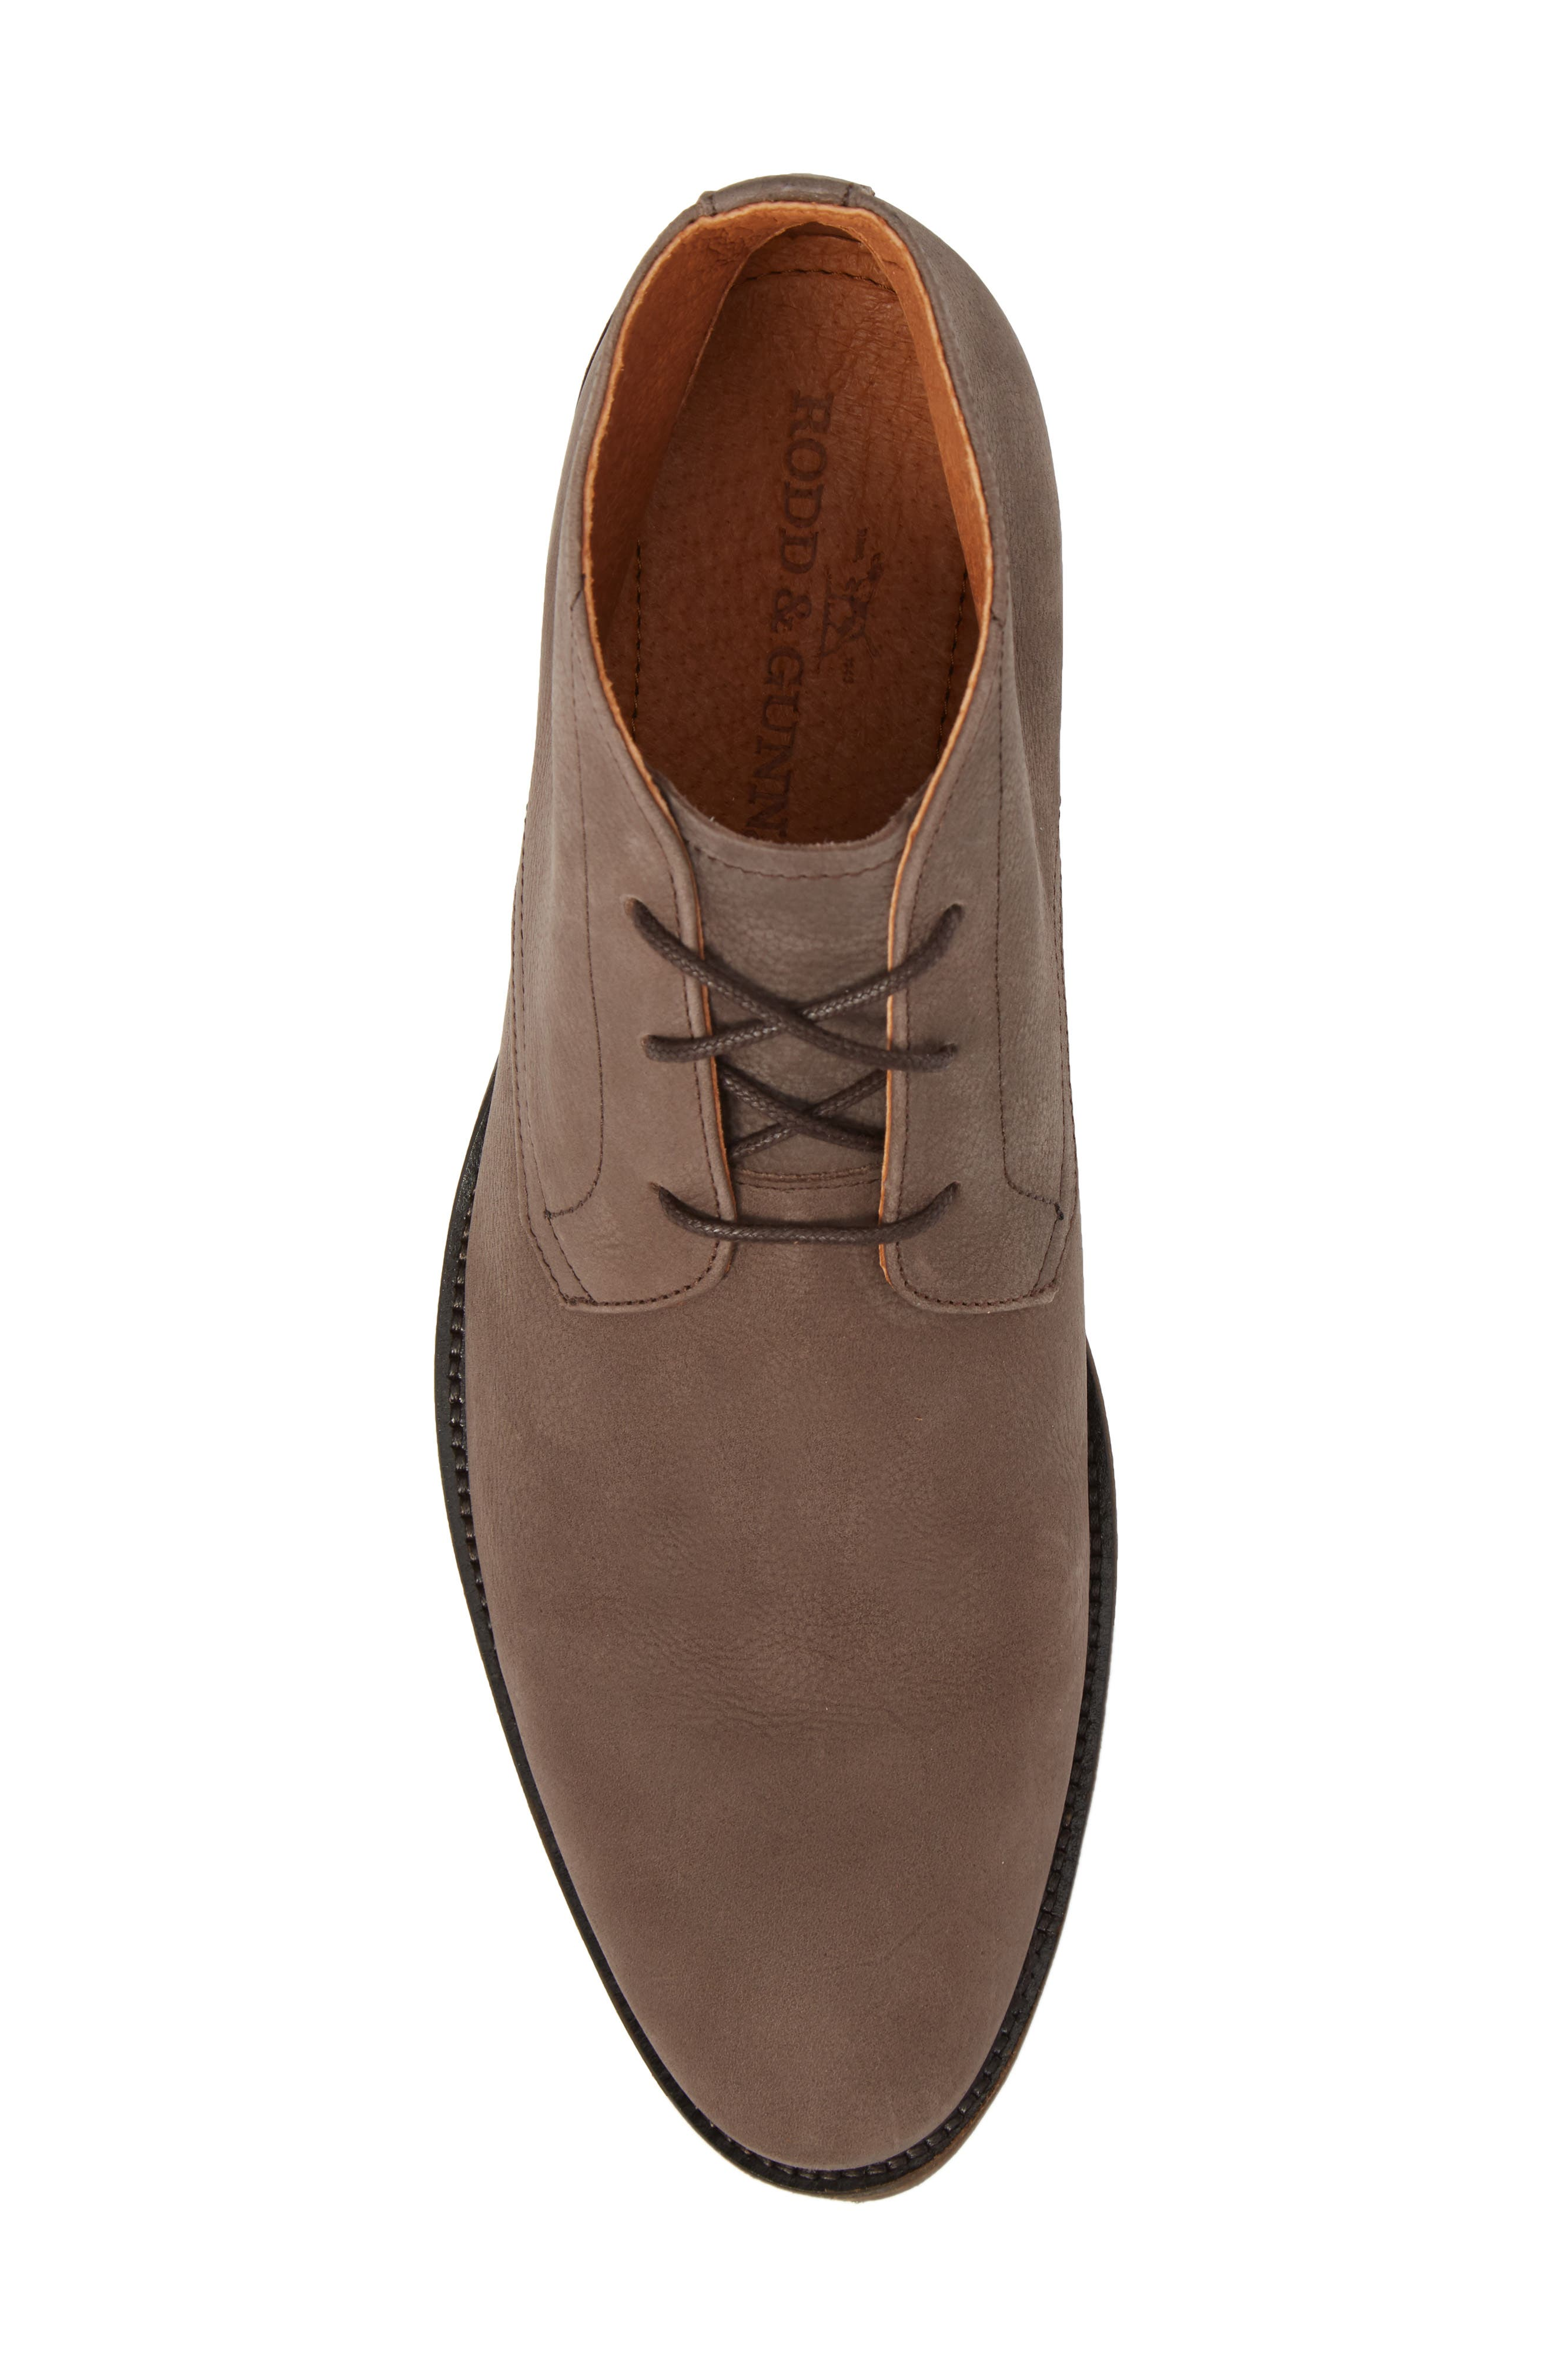 Barber Road Chukka Boot,                             Alternate thumbnail 5, color,                             Tobacco Leather